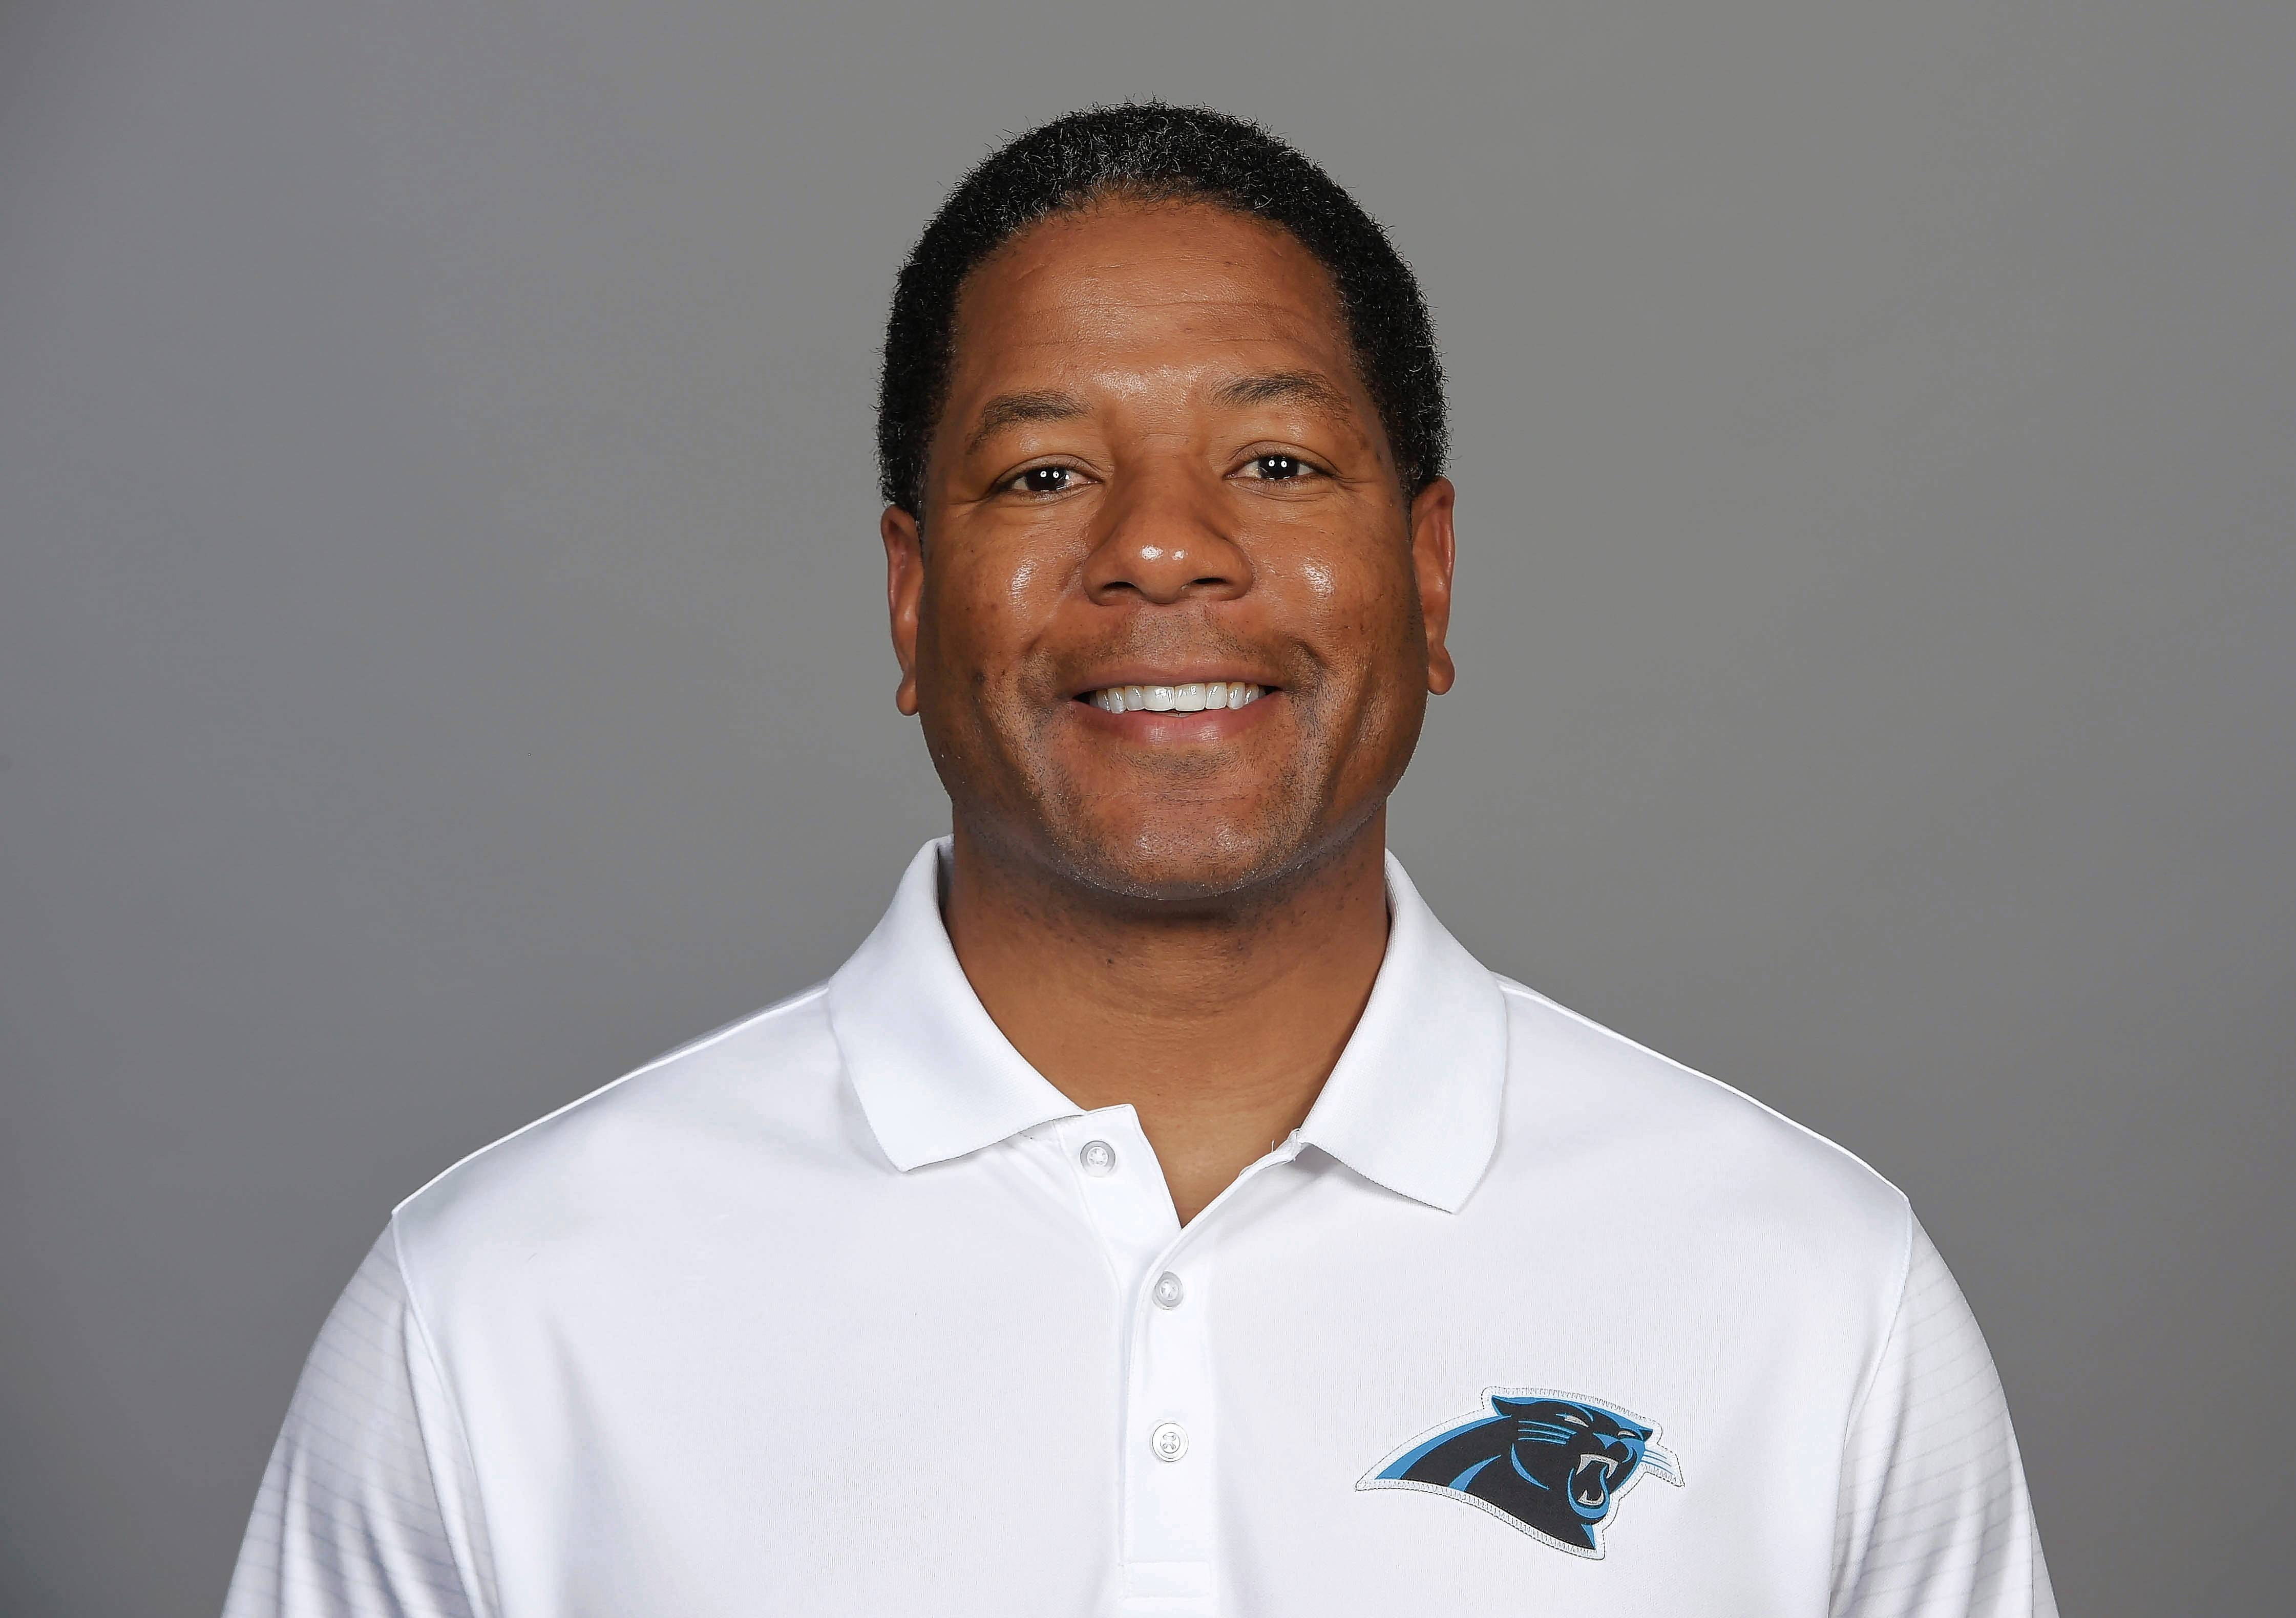 FILE -- This is a 2016, file photo showing Steve Wilks of the Carolina Panthers NFL football team. Ron Rivera announced he has promoted Steve Wilks as the Panthers new defensive coordinator.  Wilks has served as the Panthers defensive backs coach since 2012 and was given the additional title of assistant head coach by Rivera in 2015. He replaces Sean McDermott, who was hired as the Buffalo Bills head coach earlier this week